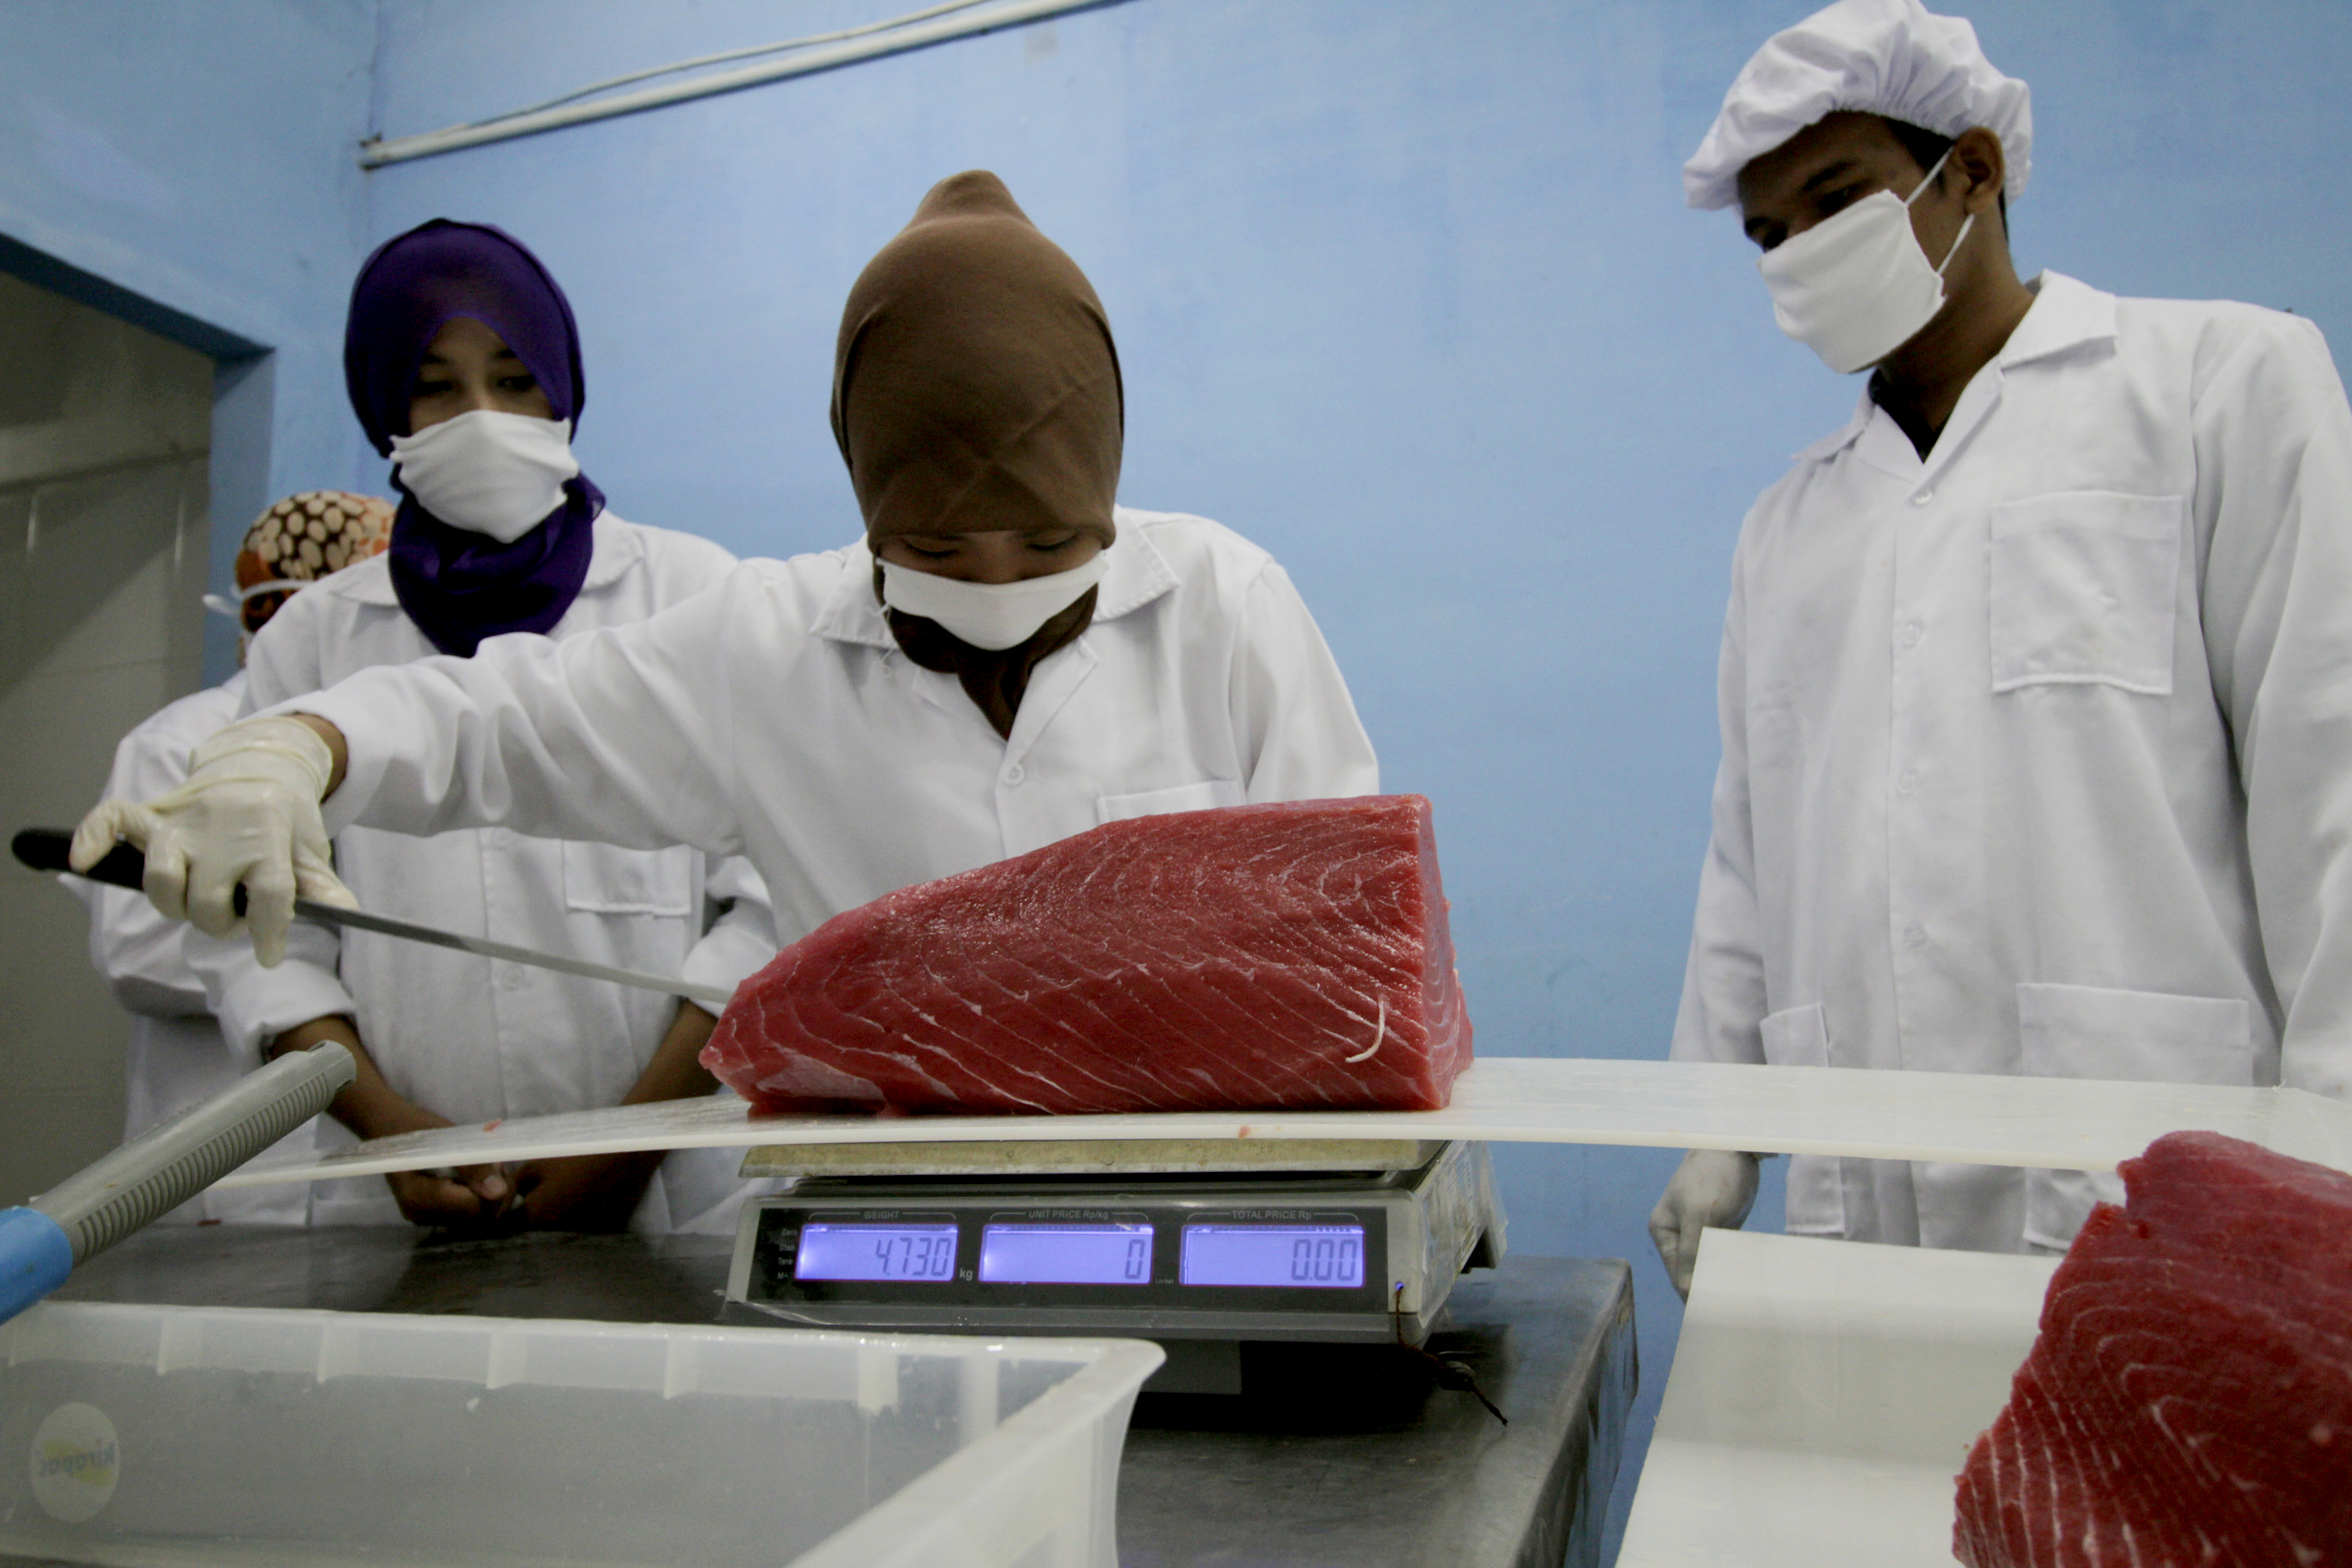 Workers Process Tuna Fish For Export In Indonesia